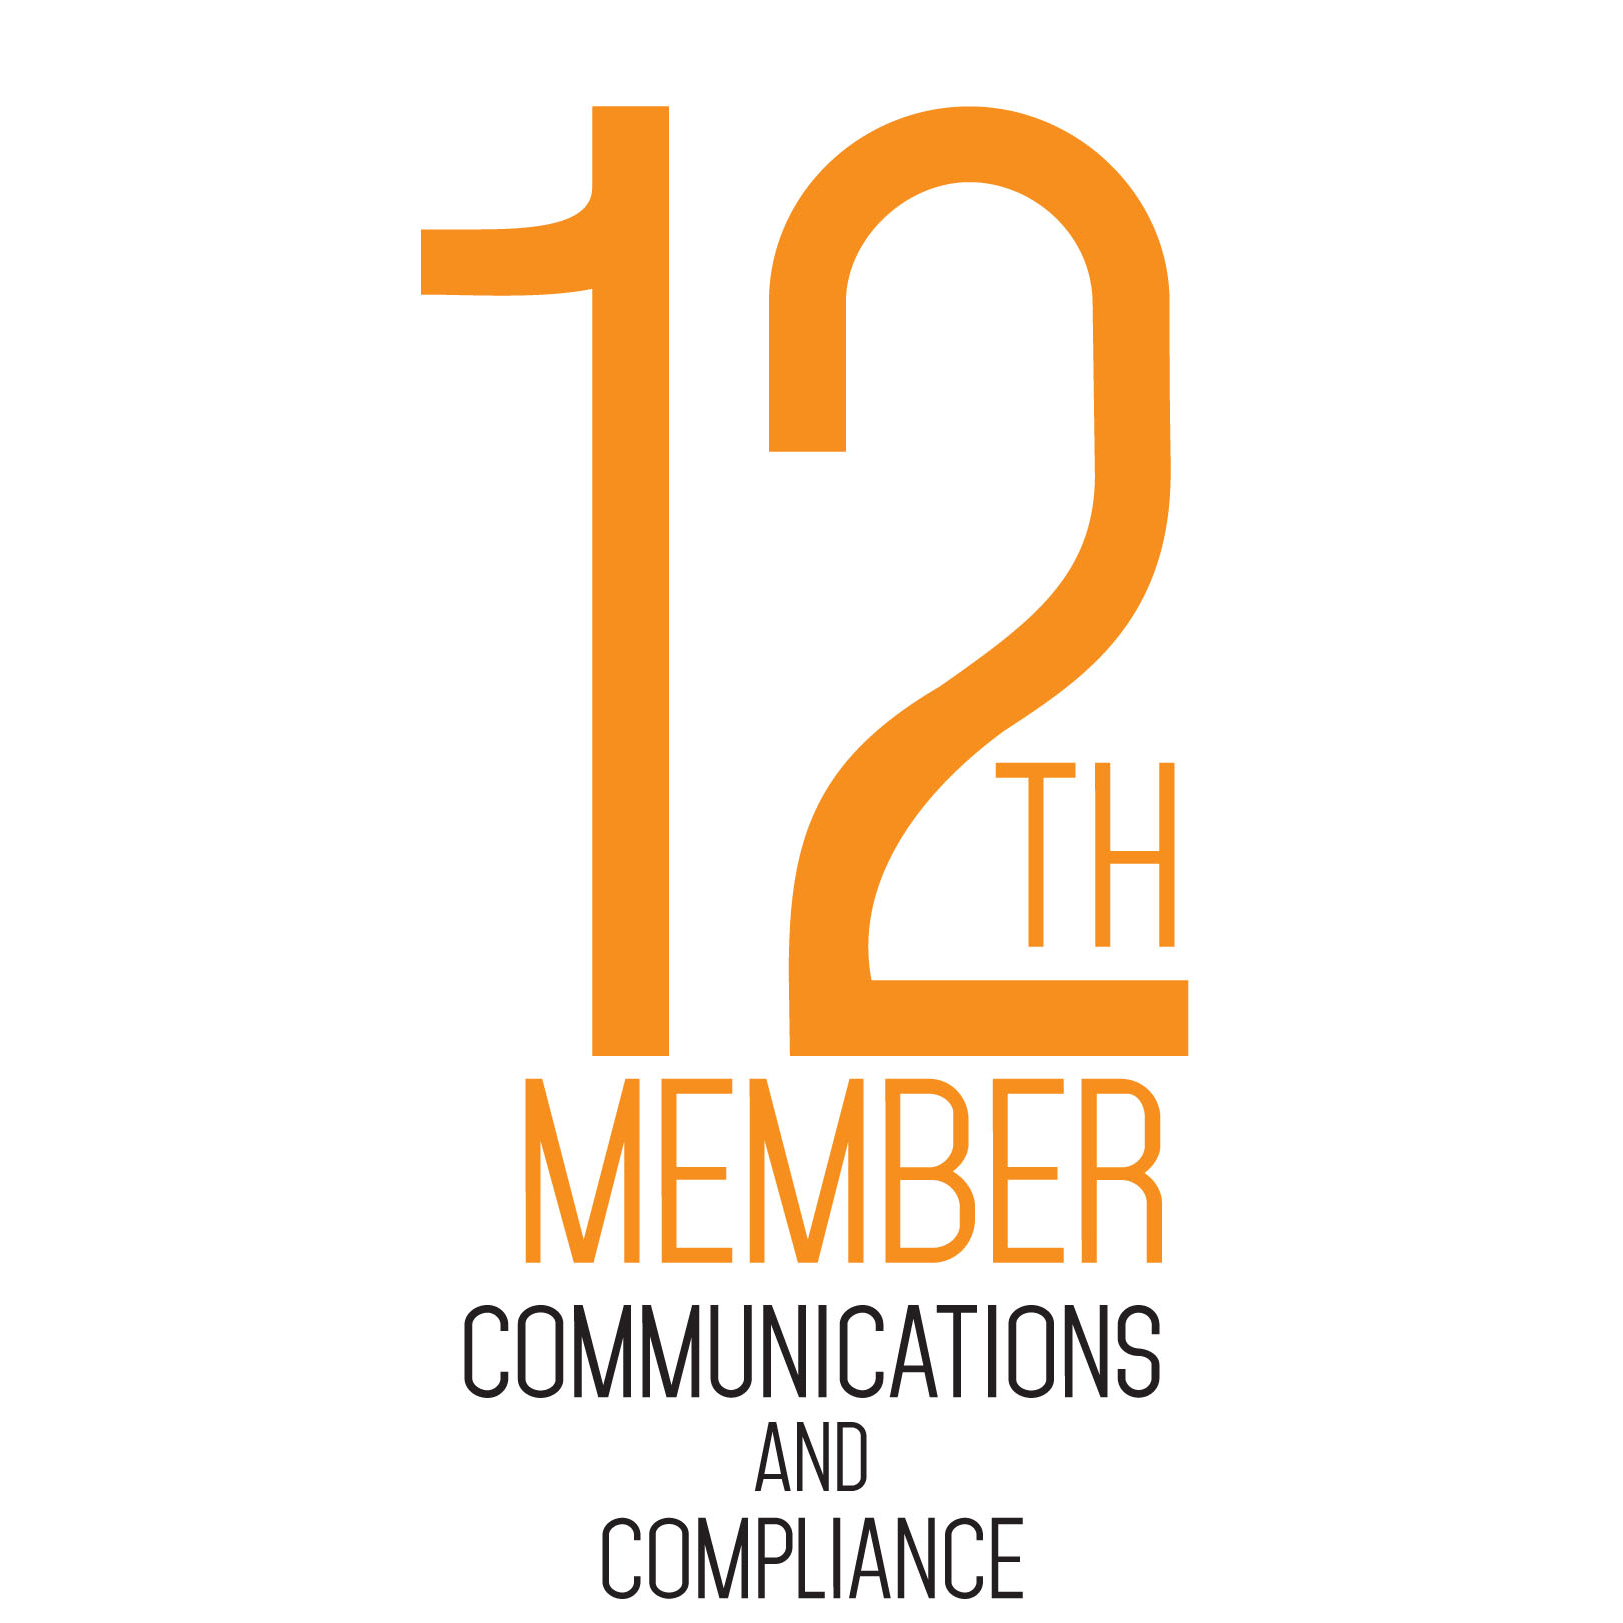 12th Member Communications and Compliance